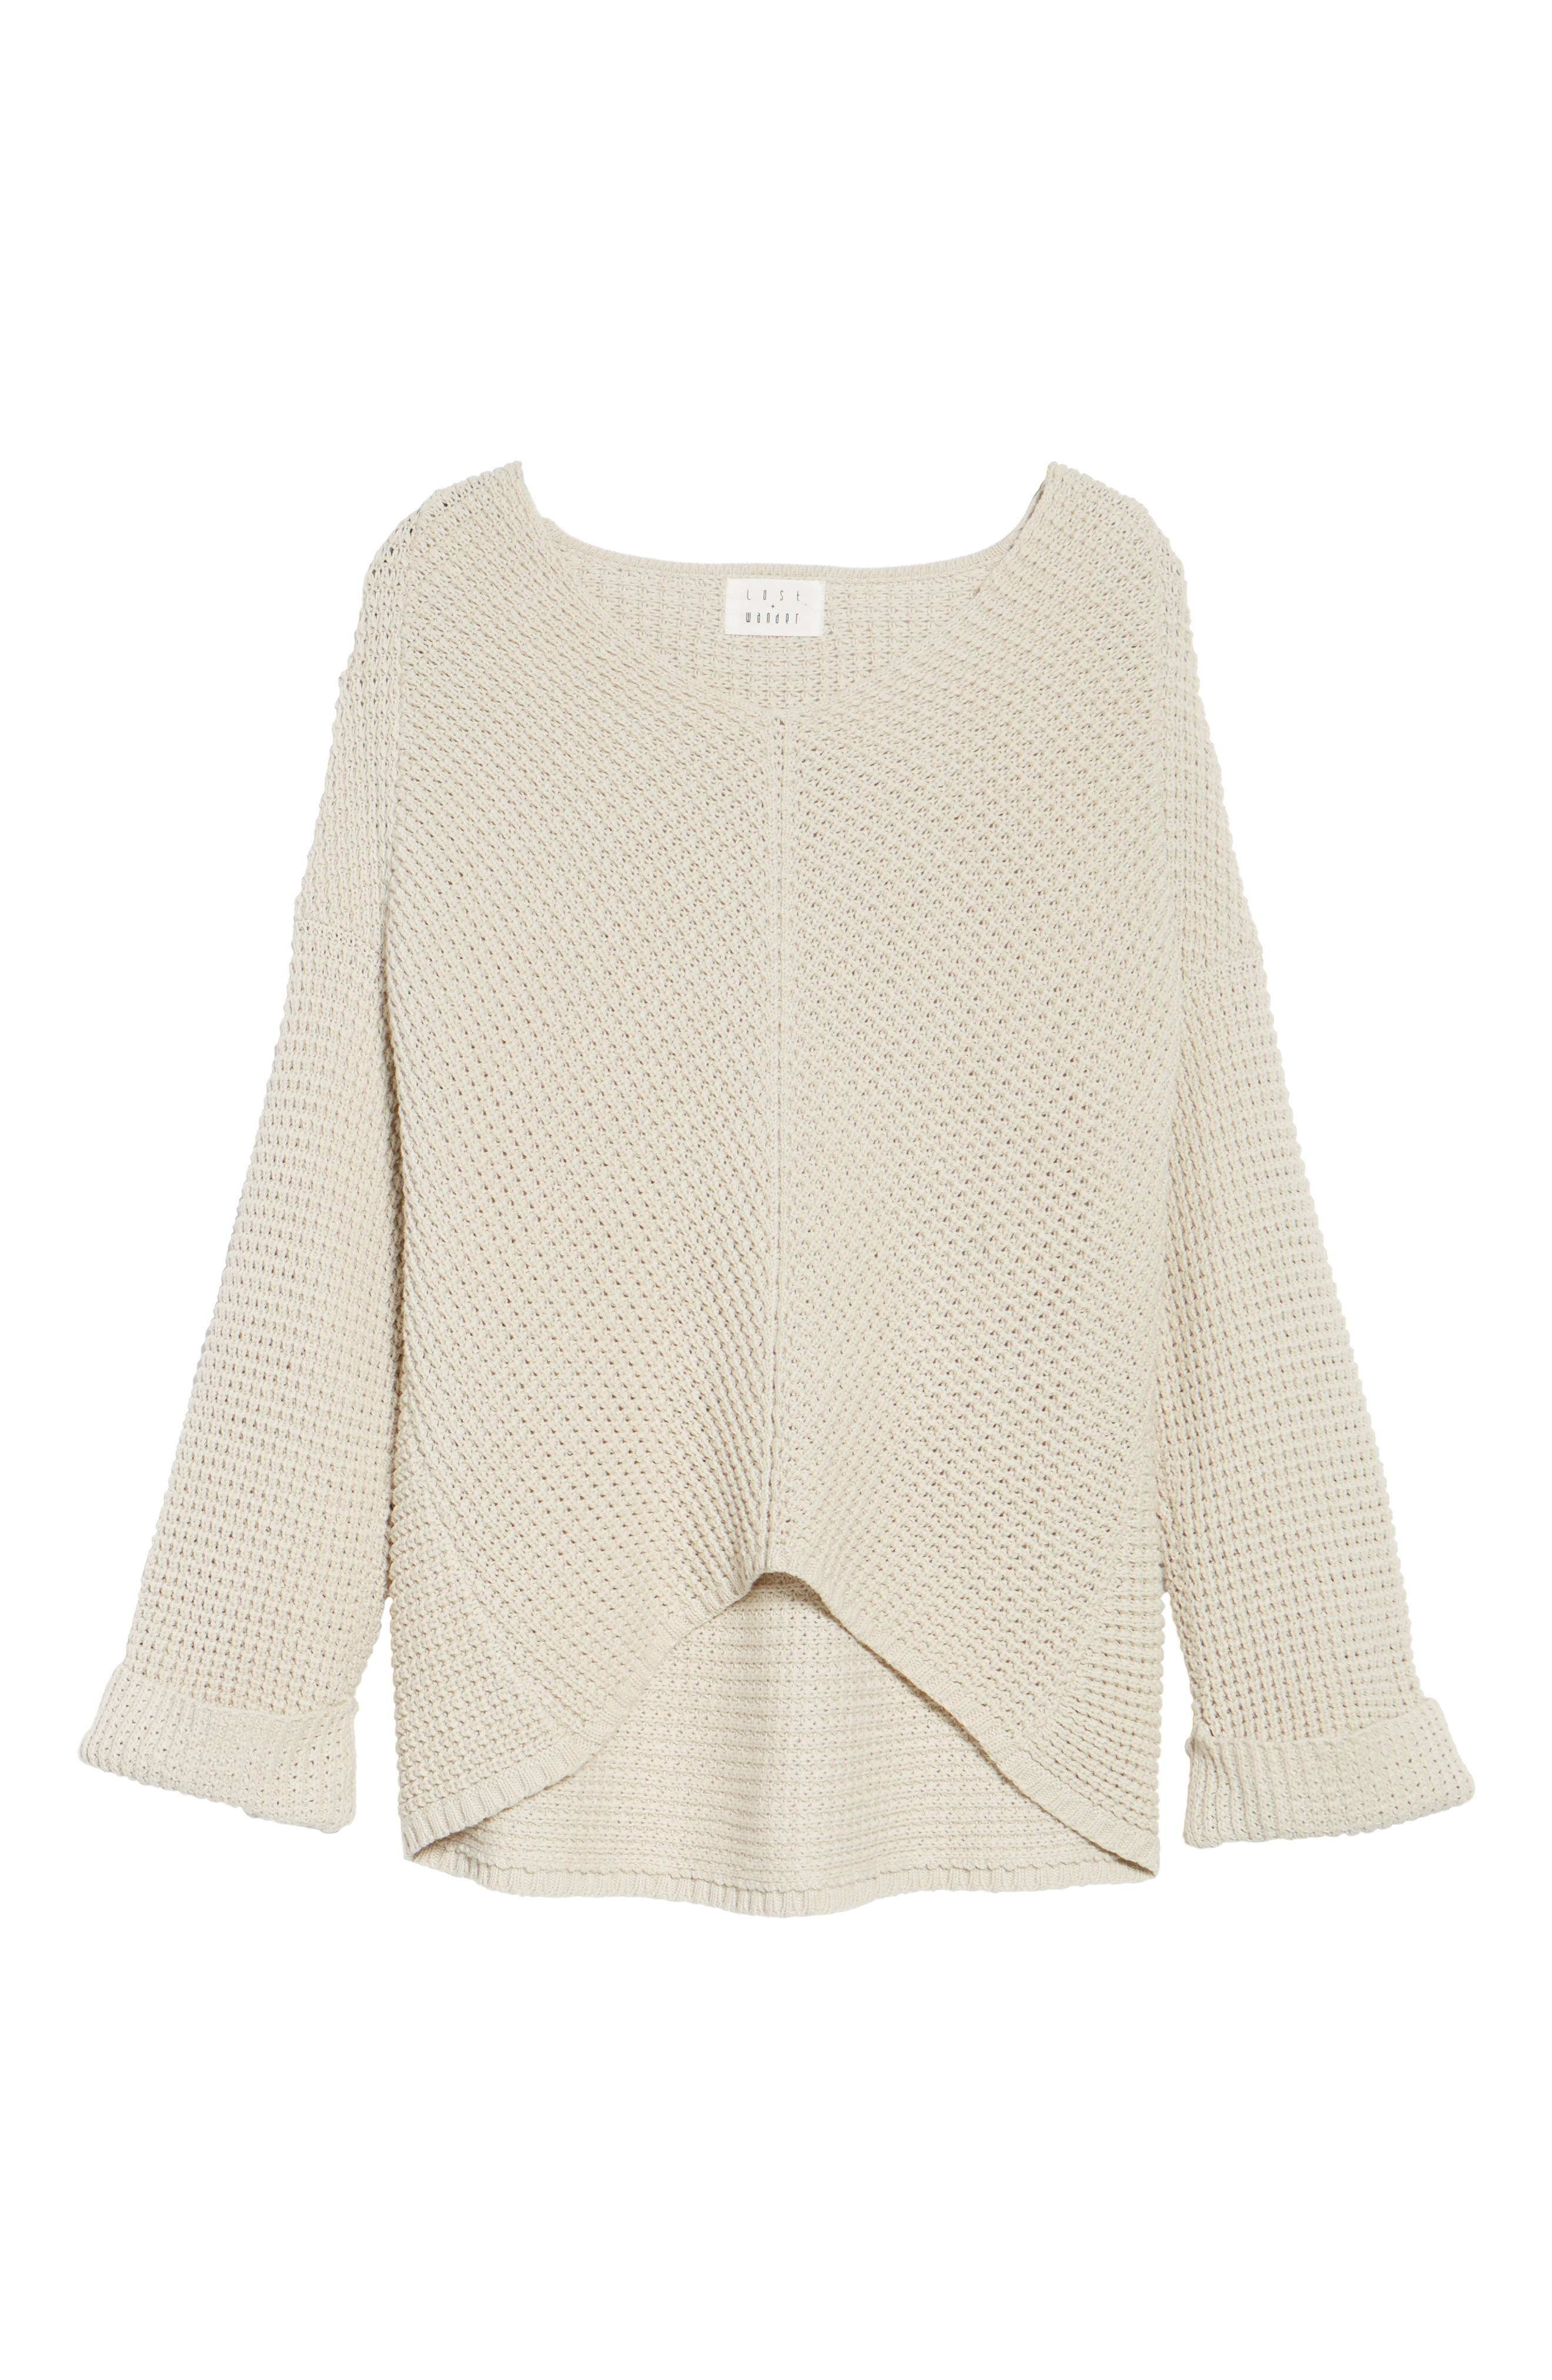 Adelia Bell Sleeve Sweater,                             Alternate thumbnail 7, color,                             Creme